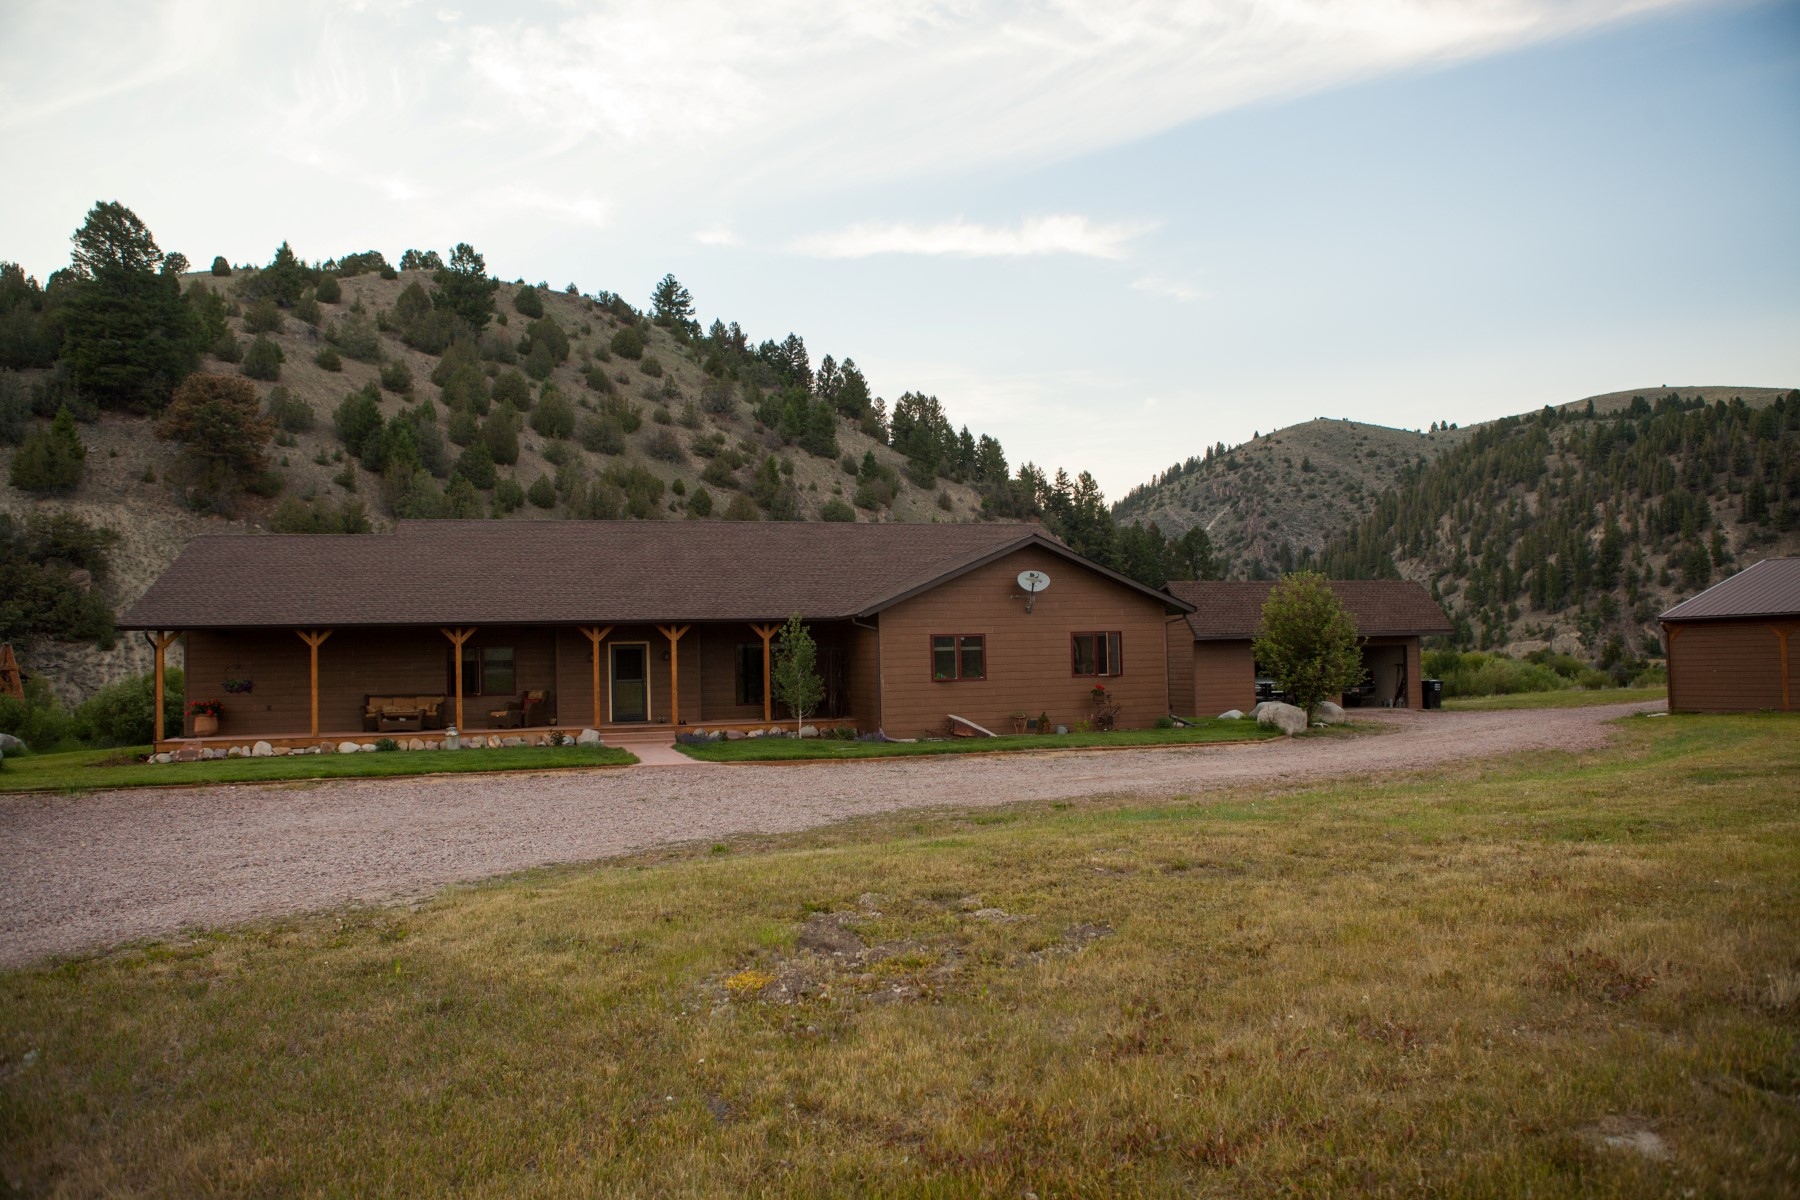 Additional photo for property listing at 29 Buckskin Lane, Philipsburg, MT 59858 29  Buckskin Ln Philipsburg, Montana 59858 United States